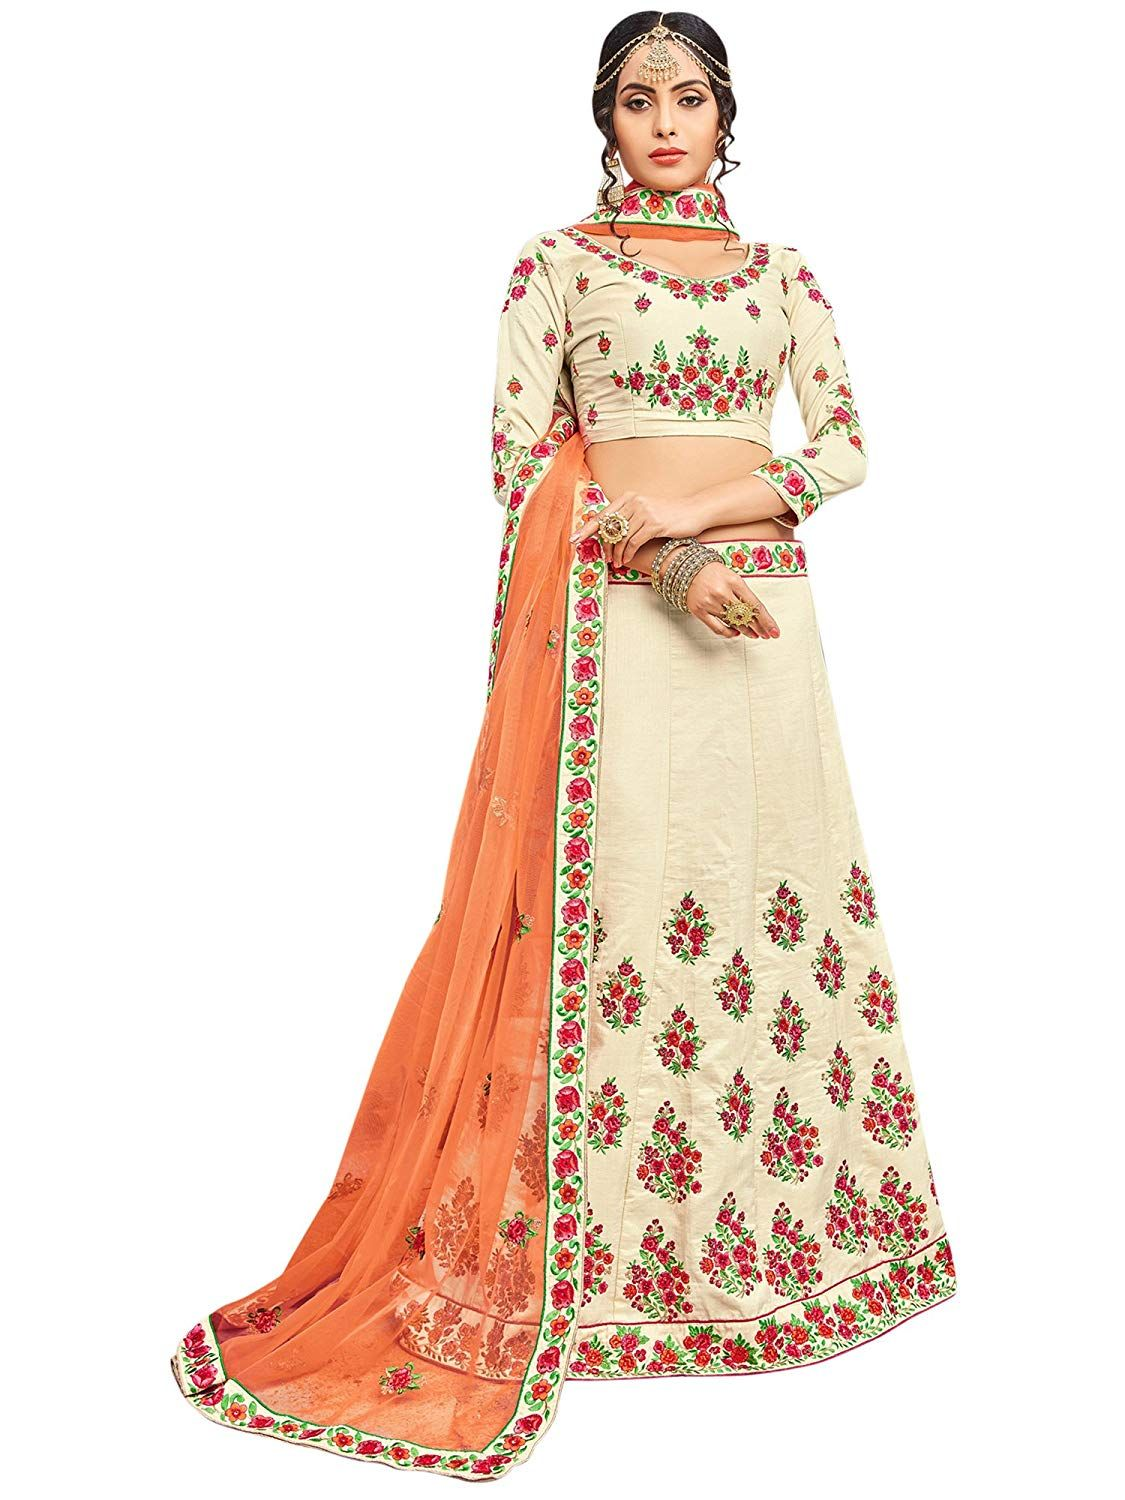 43353334b0f Manvaa Banarasi Silk Women S Embroidered Lehenga In Cream Color  Amazon.in   Clothing   Accessories